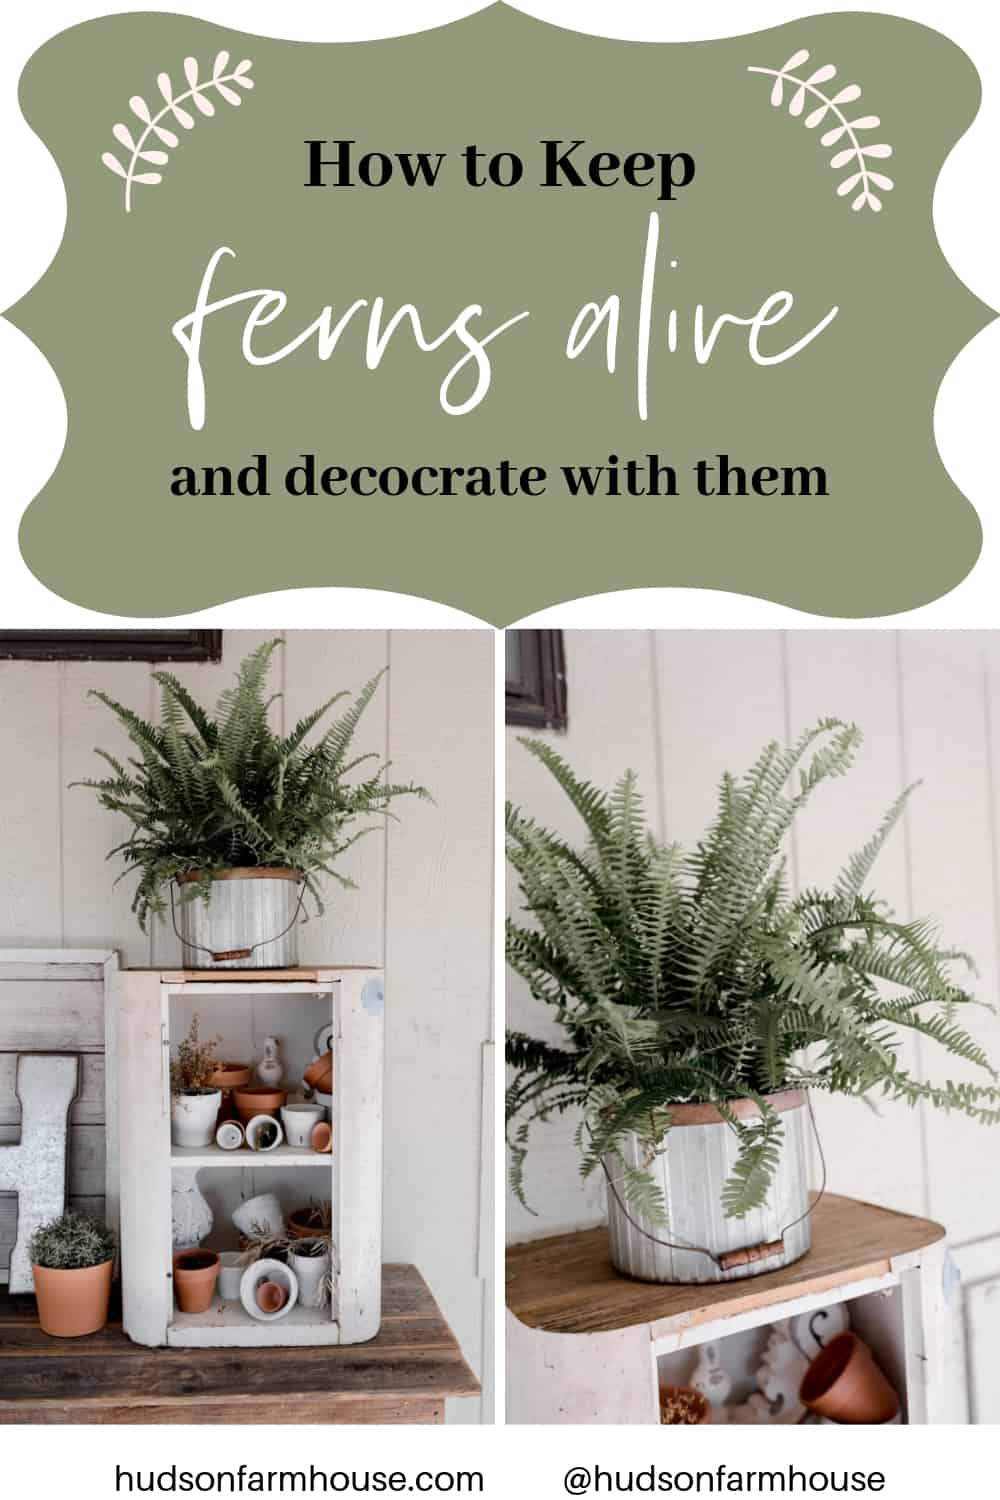 How to keep  fern alive. plnt decor ideas. plant decor bedroom plant decor indoor plant decor living room plant decor ikea plant decor outdoor plant decor diy plant decor apartment boho plant decor plant decor bathroom plant decor kitchen plant decor ideas plant decor wall farmhouse plant decor minimalist plant decor hanging plant decor fake plant decor modern plant decor plant decor office plant decor dorm faux plant decor house plant decor air plant decor pothos plant decor plant decor patio rustic plant decor snake plant decor